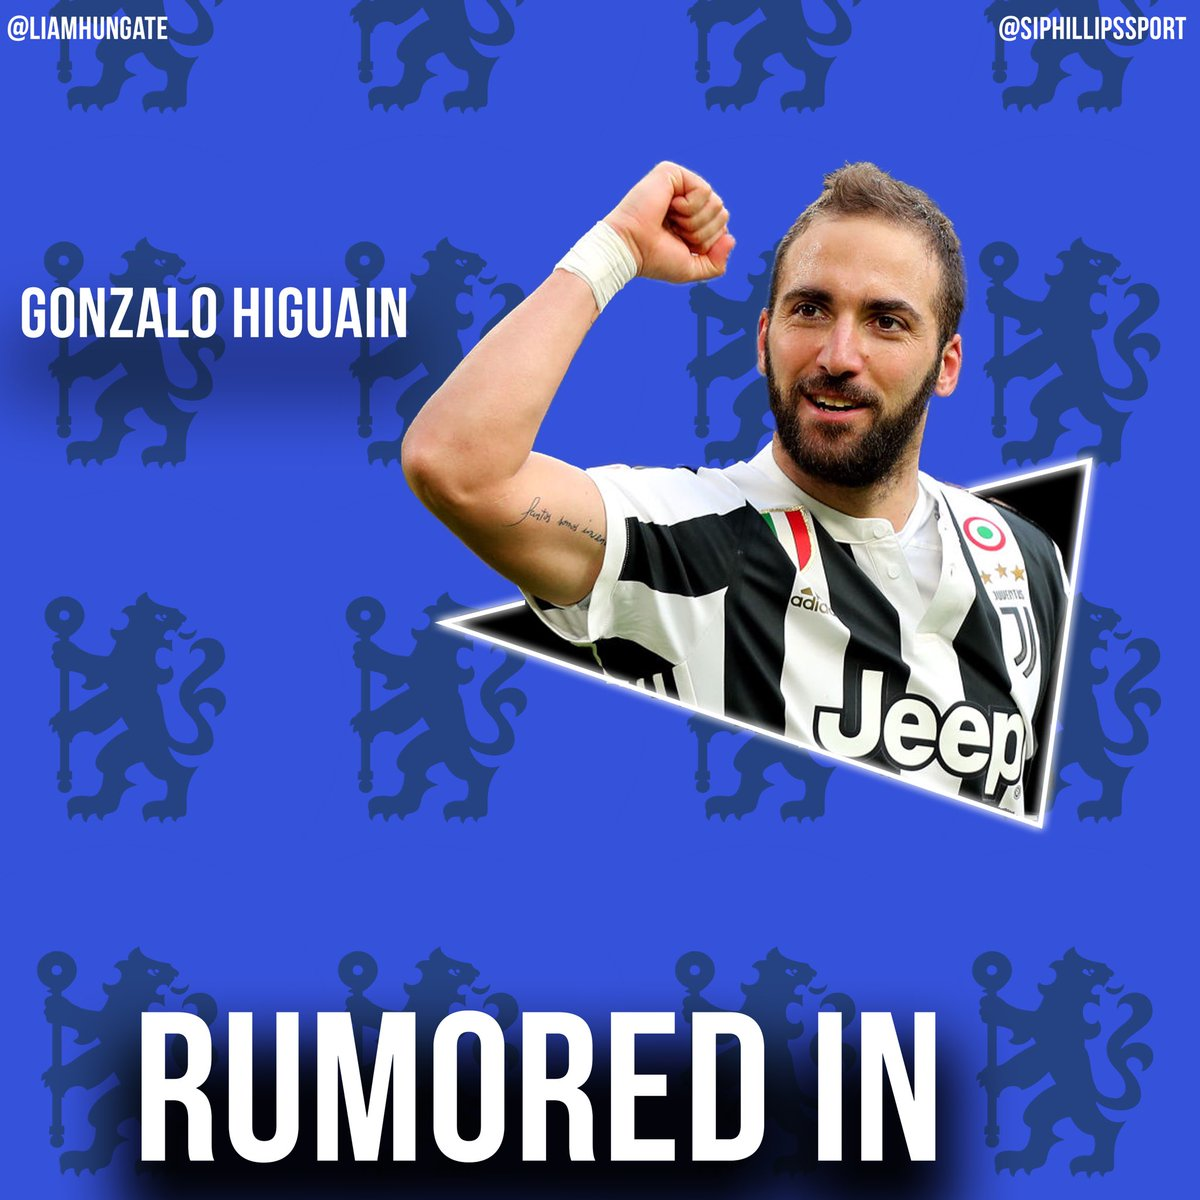 Gazzetta dello Sport report that Maurizio Sarri will look to sign Gonzalo Higuain at Chelsea, with Alvaro Morata set to be allowed to join Juventus.